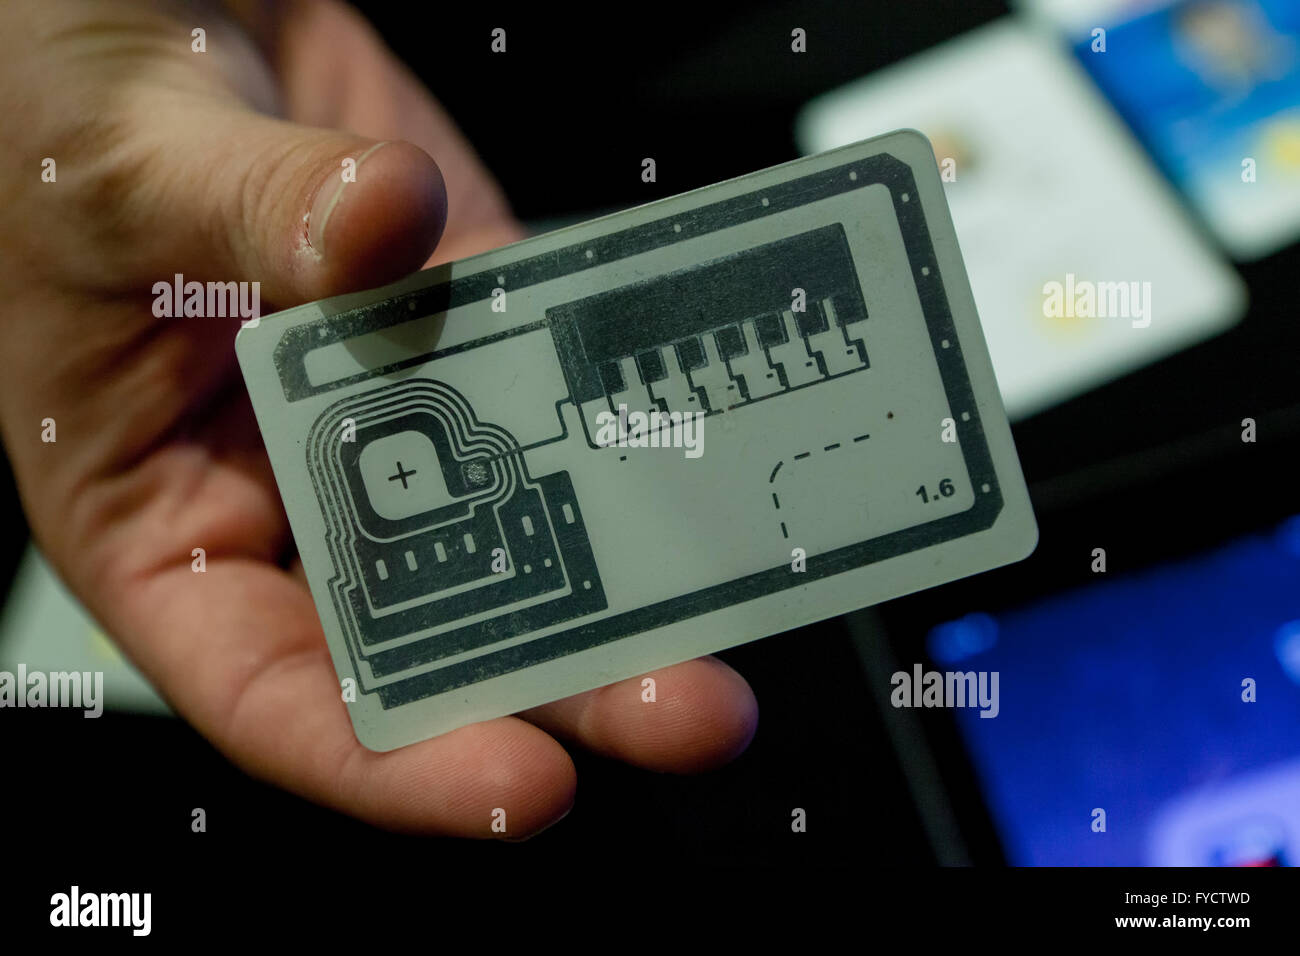 Credit card security chip circuit layout - USA - Stock Image